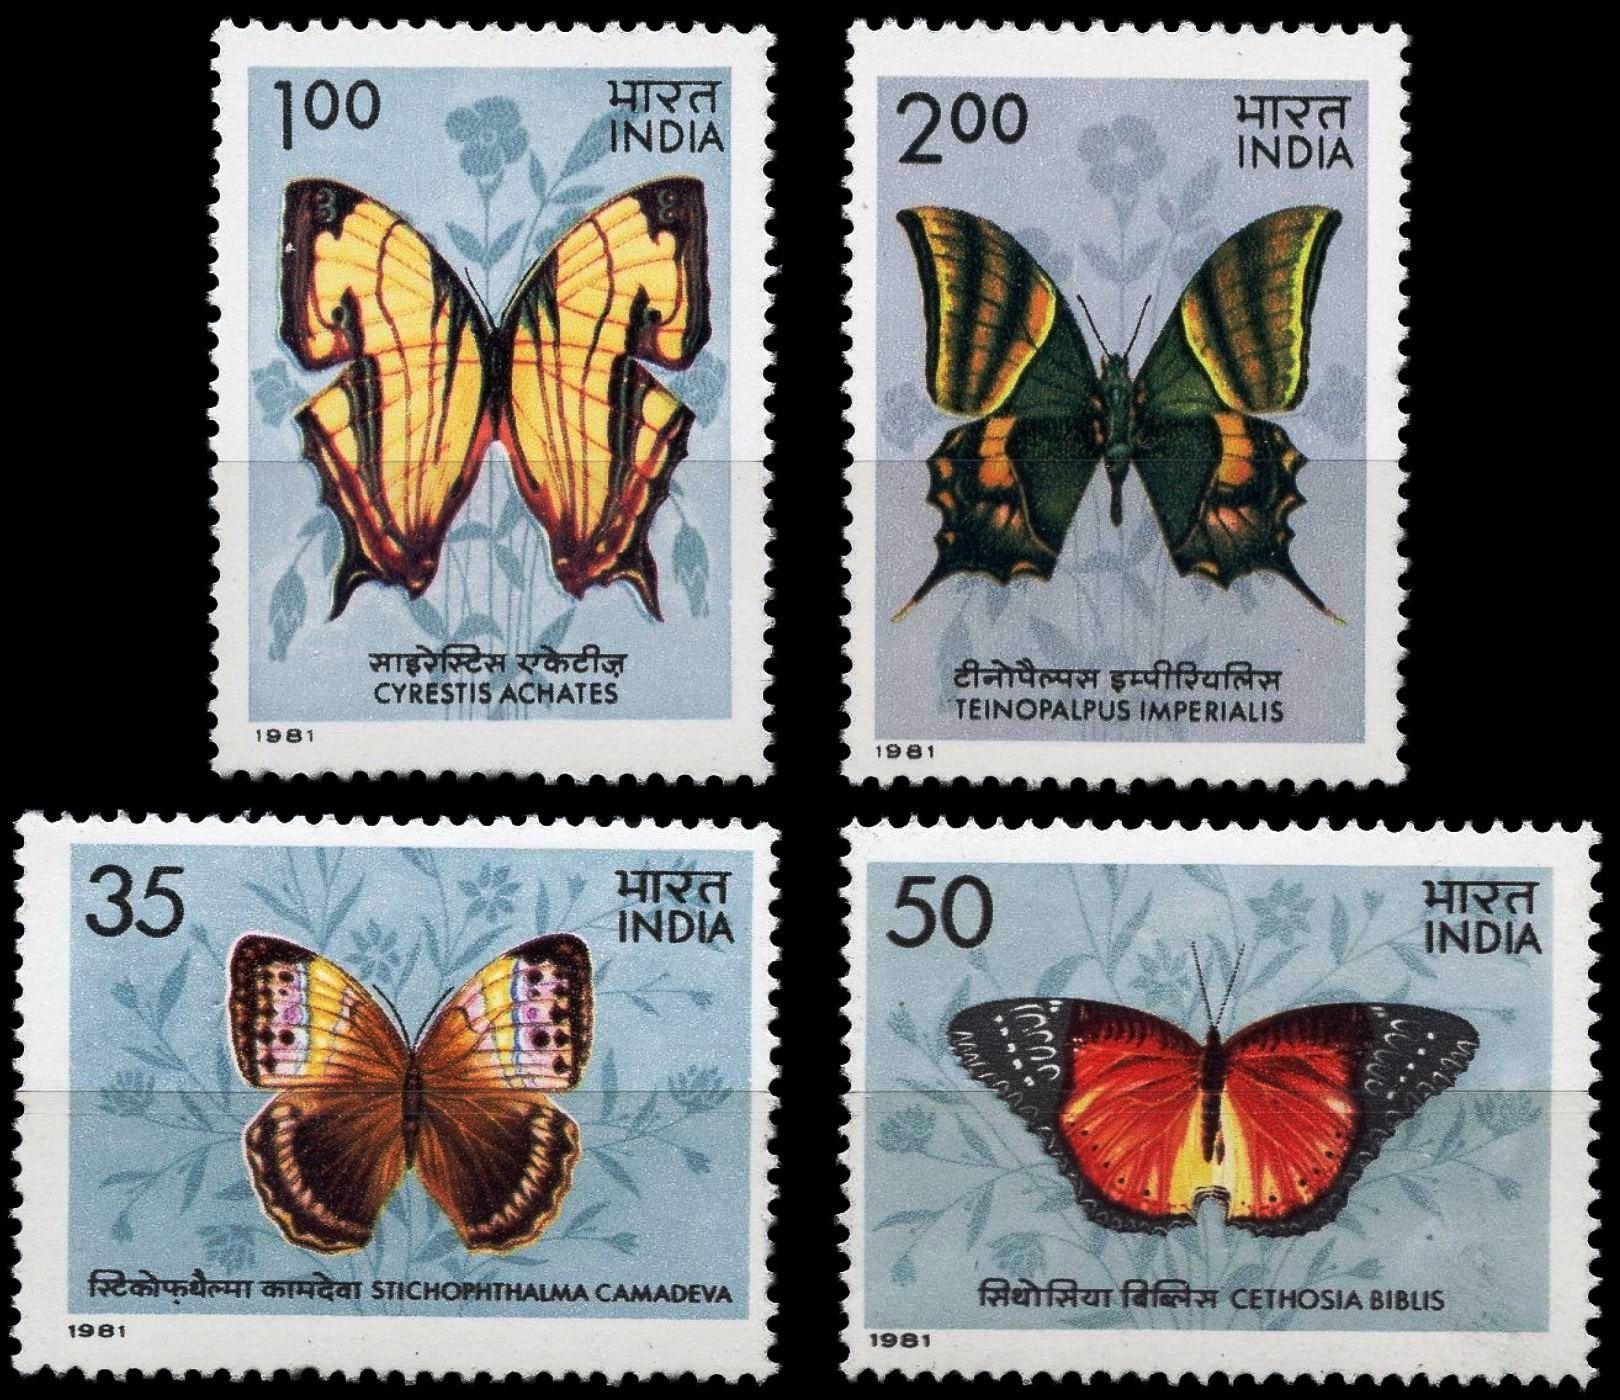 India 1981 Fdc Stamps Butterflies